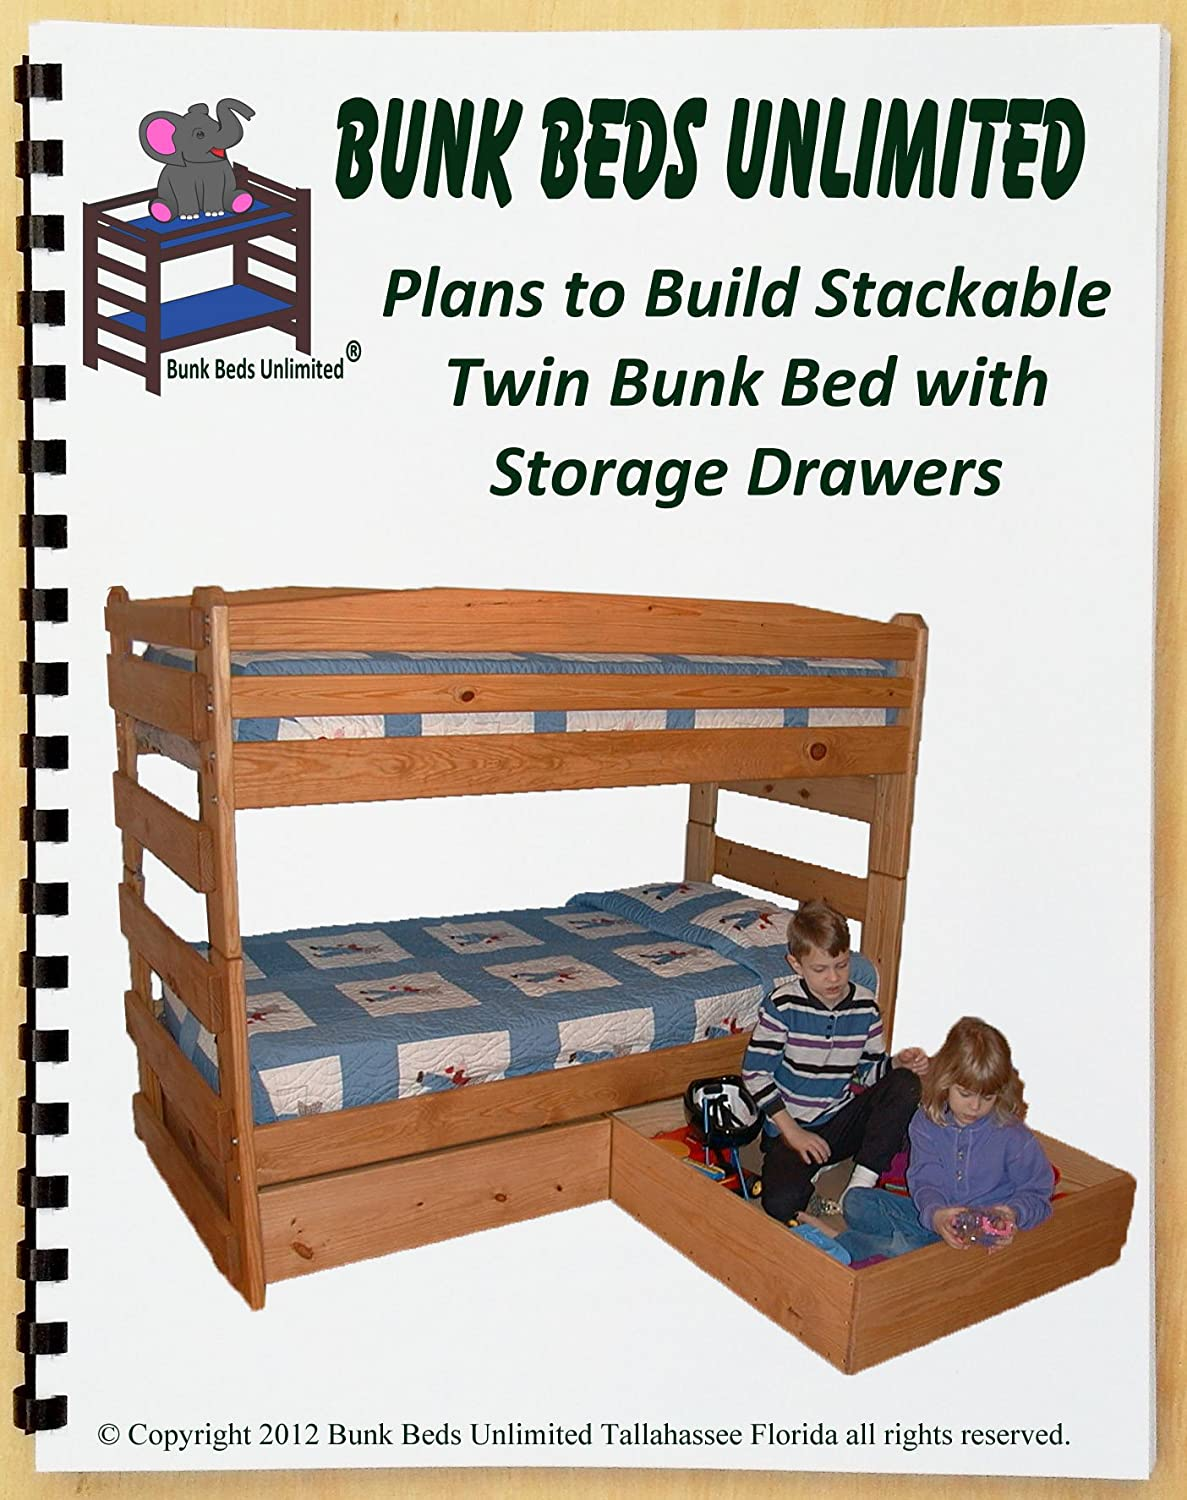 Bunk Bed Diy Woodworking Plan To Build Your Own Stackable Twin Over Twin With Two Large Storage Drawers And Hardware Kit For Bunk And Two Drawers Wood Not Included Woodworking Project Plans